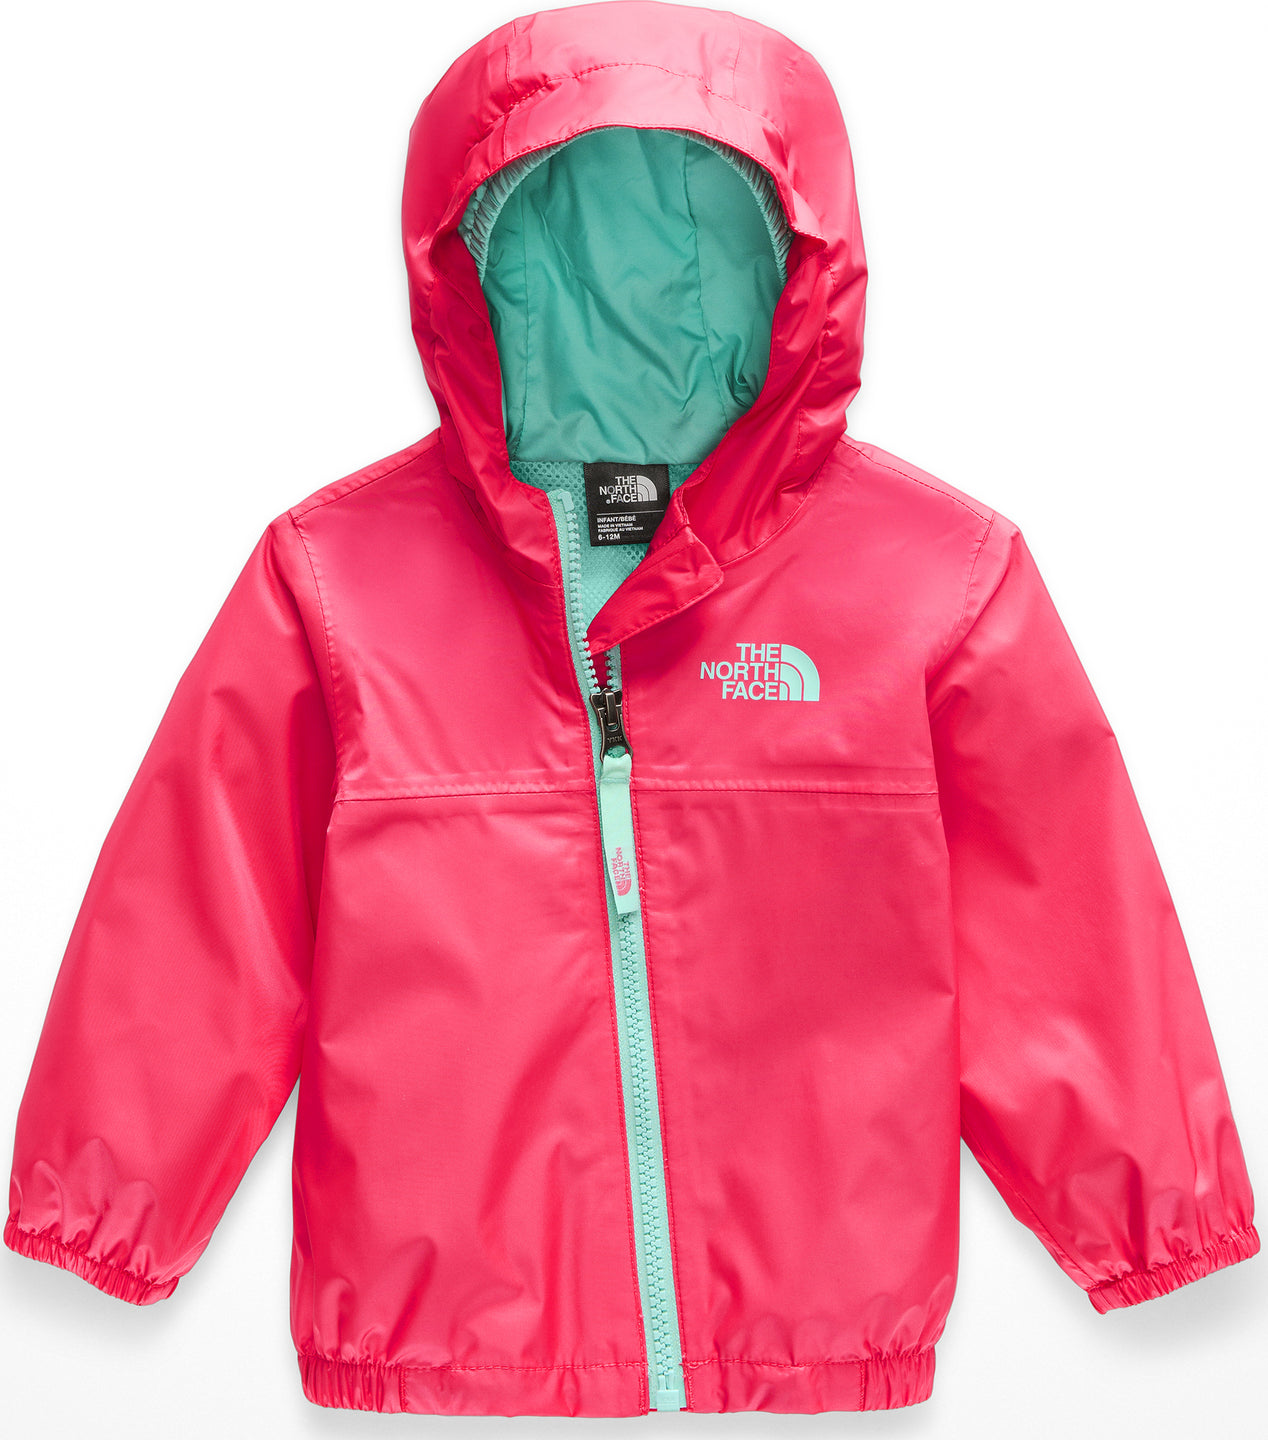 9f9b8bbac The North Face Zipline Rain Jacket - Infant | Altitude Sports